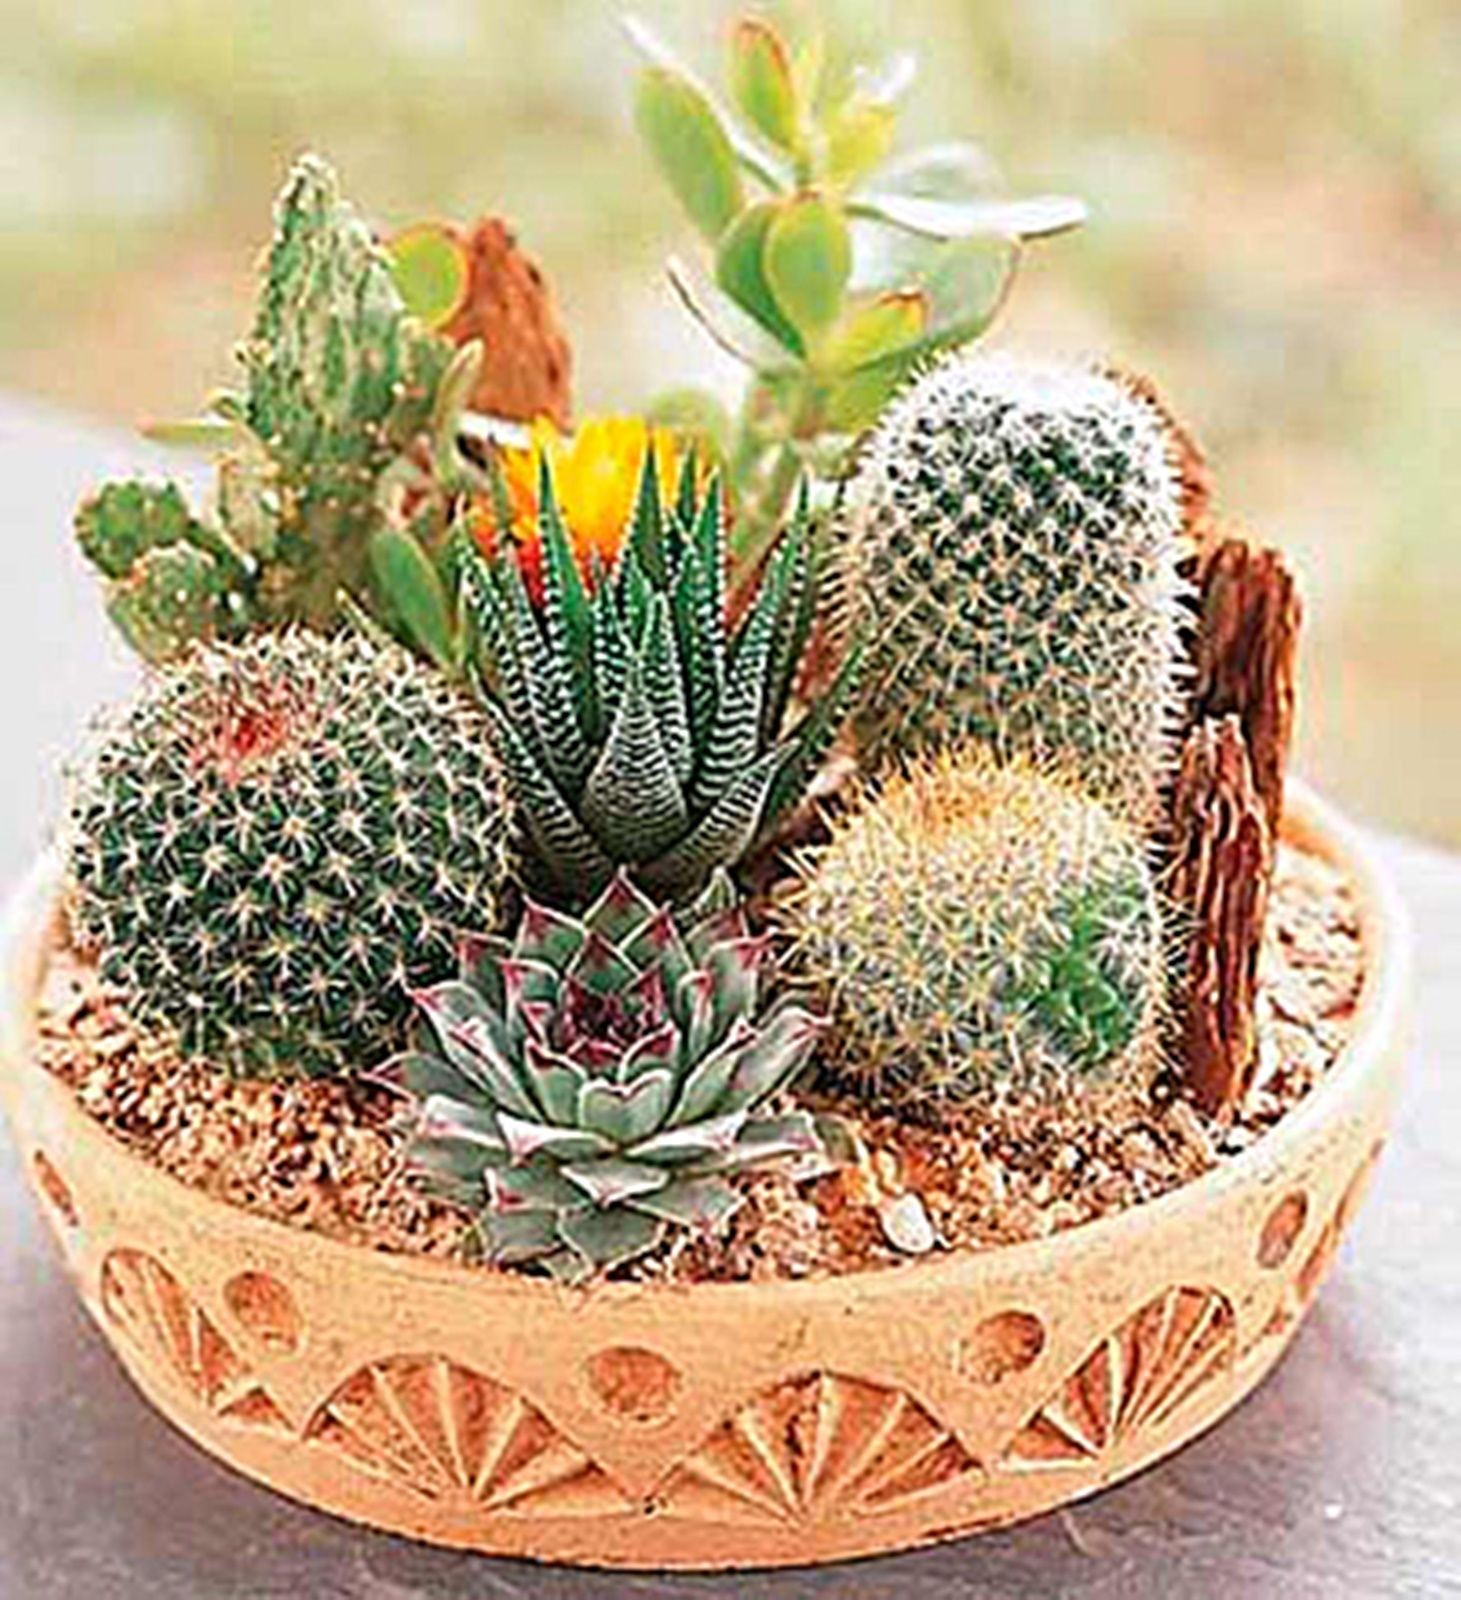 2016 New 60 Piece Cactus Seeds Mix Organic Ornamental Seed